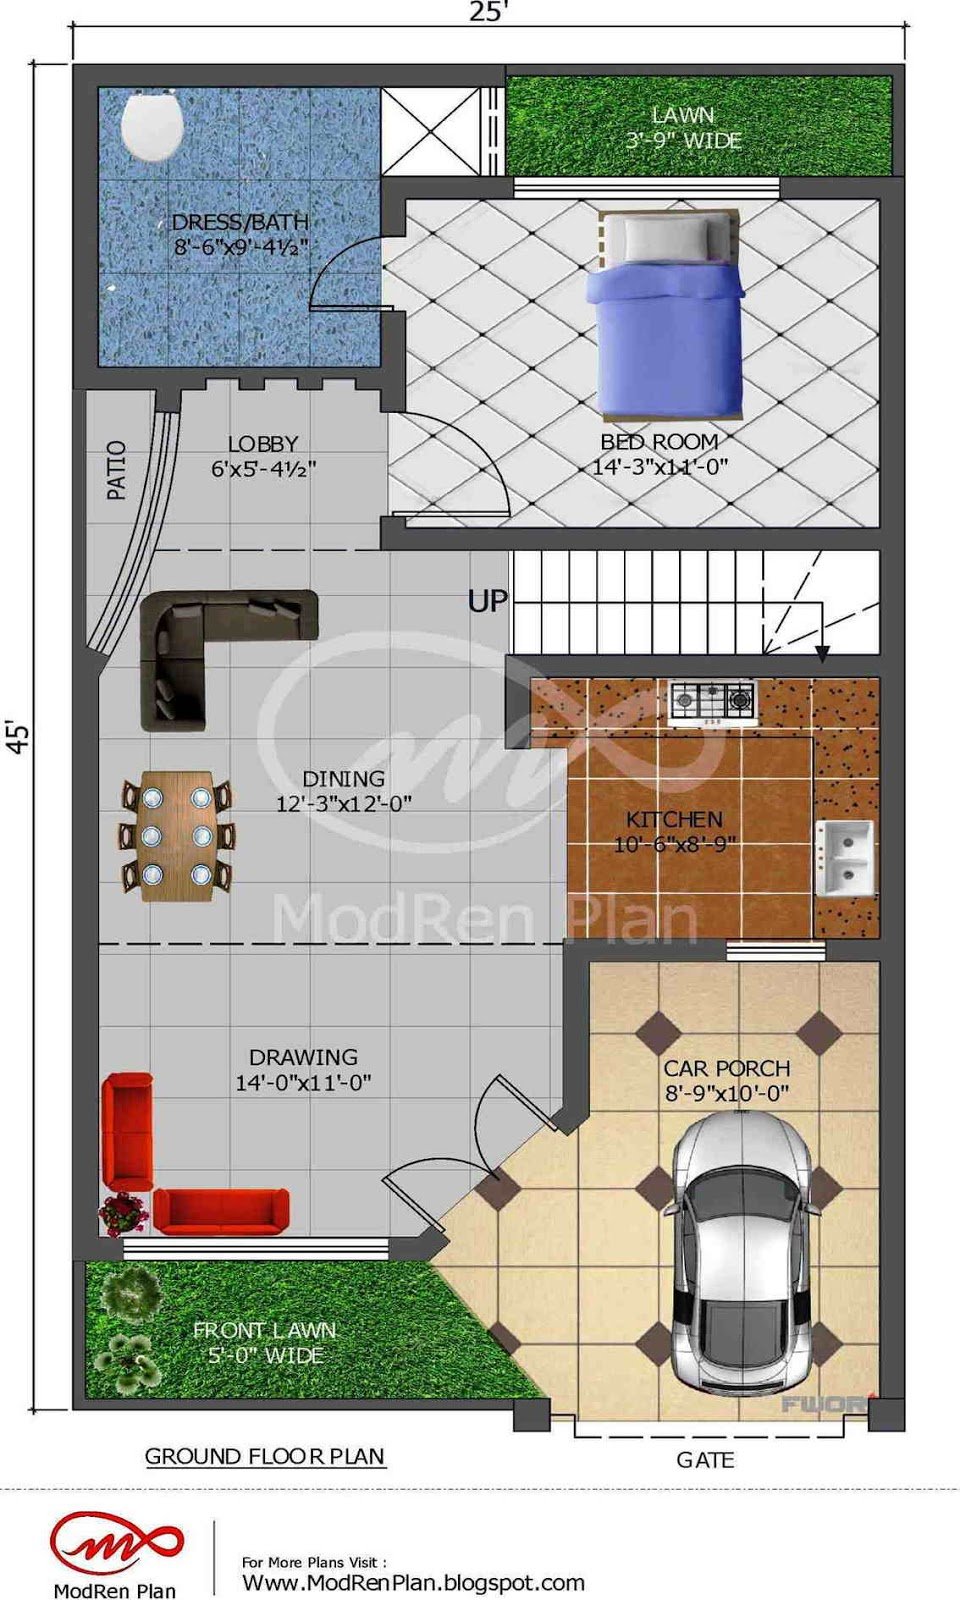 5 marla house plan 1200 sq ft 25x45 feet Design your house plans